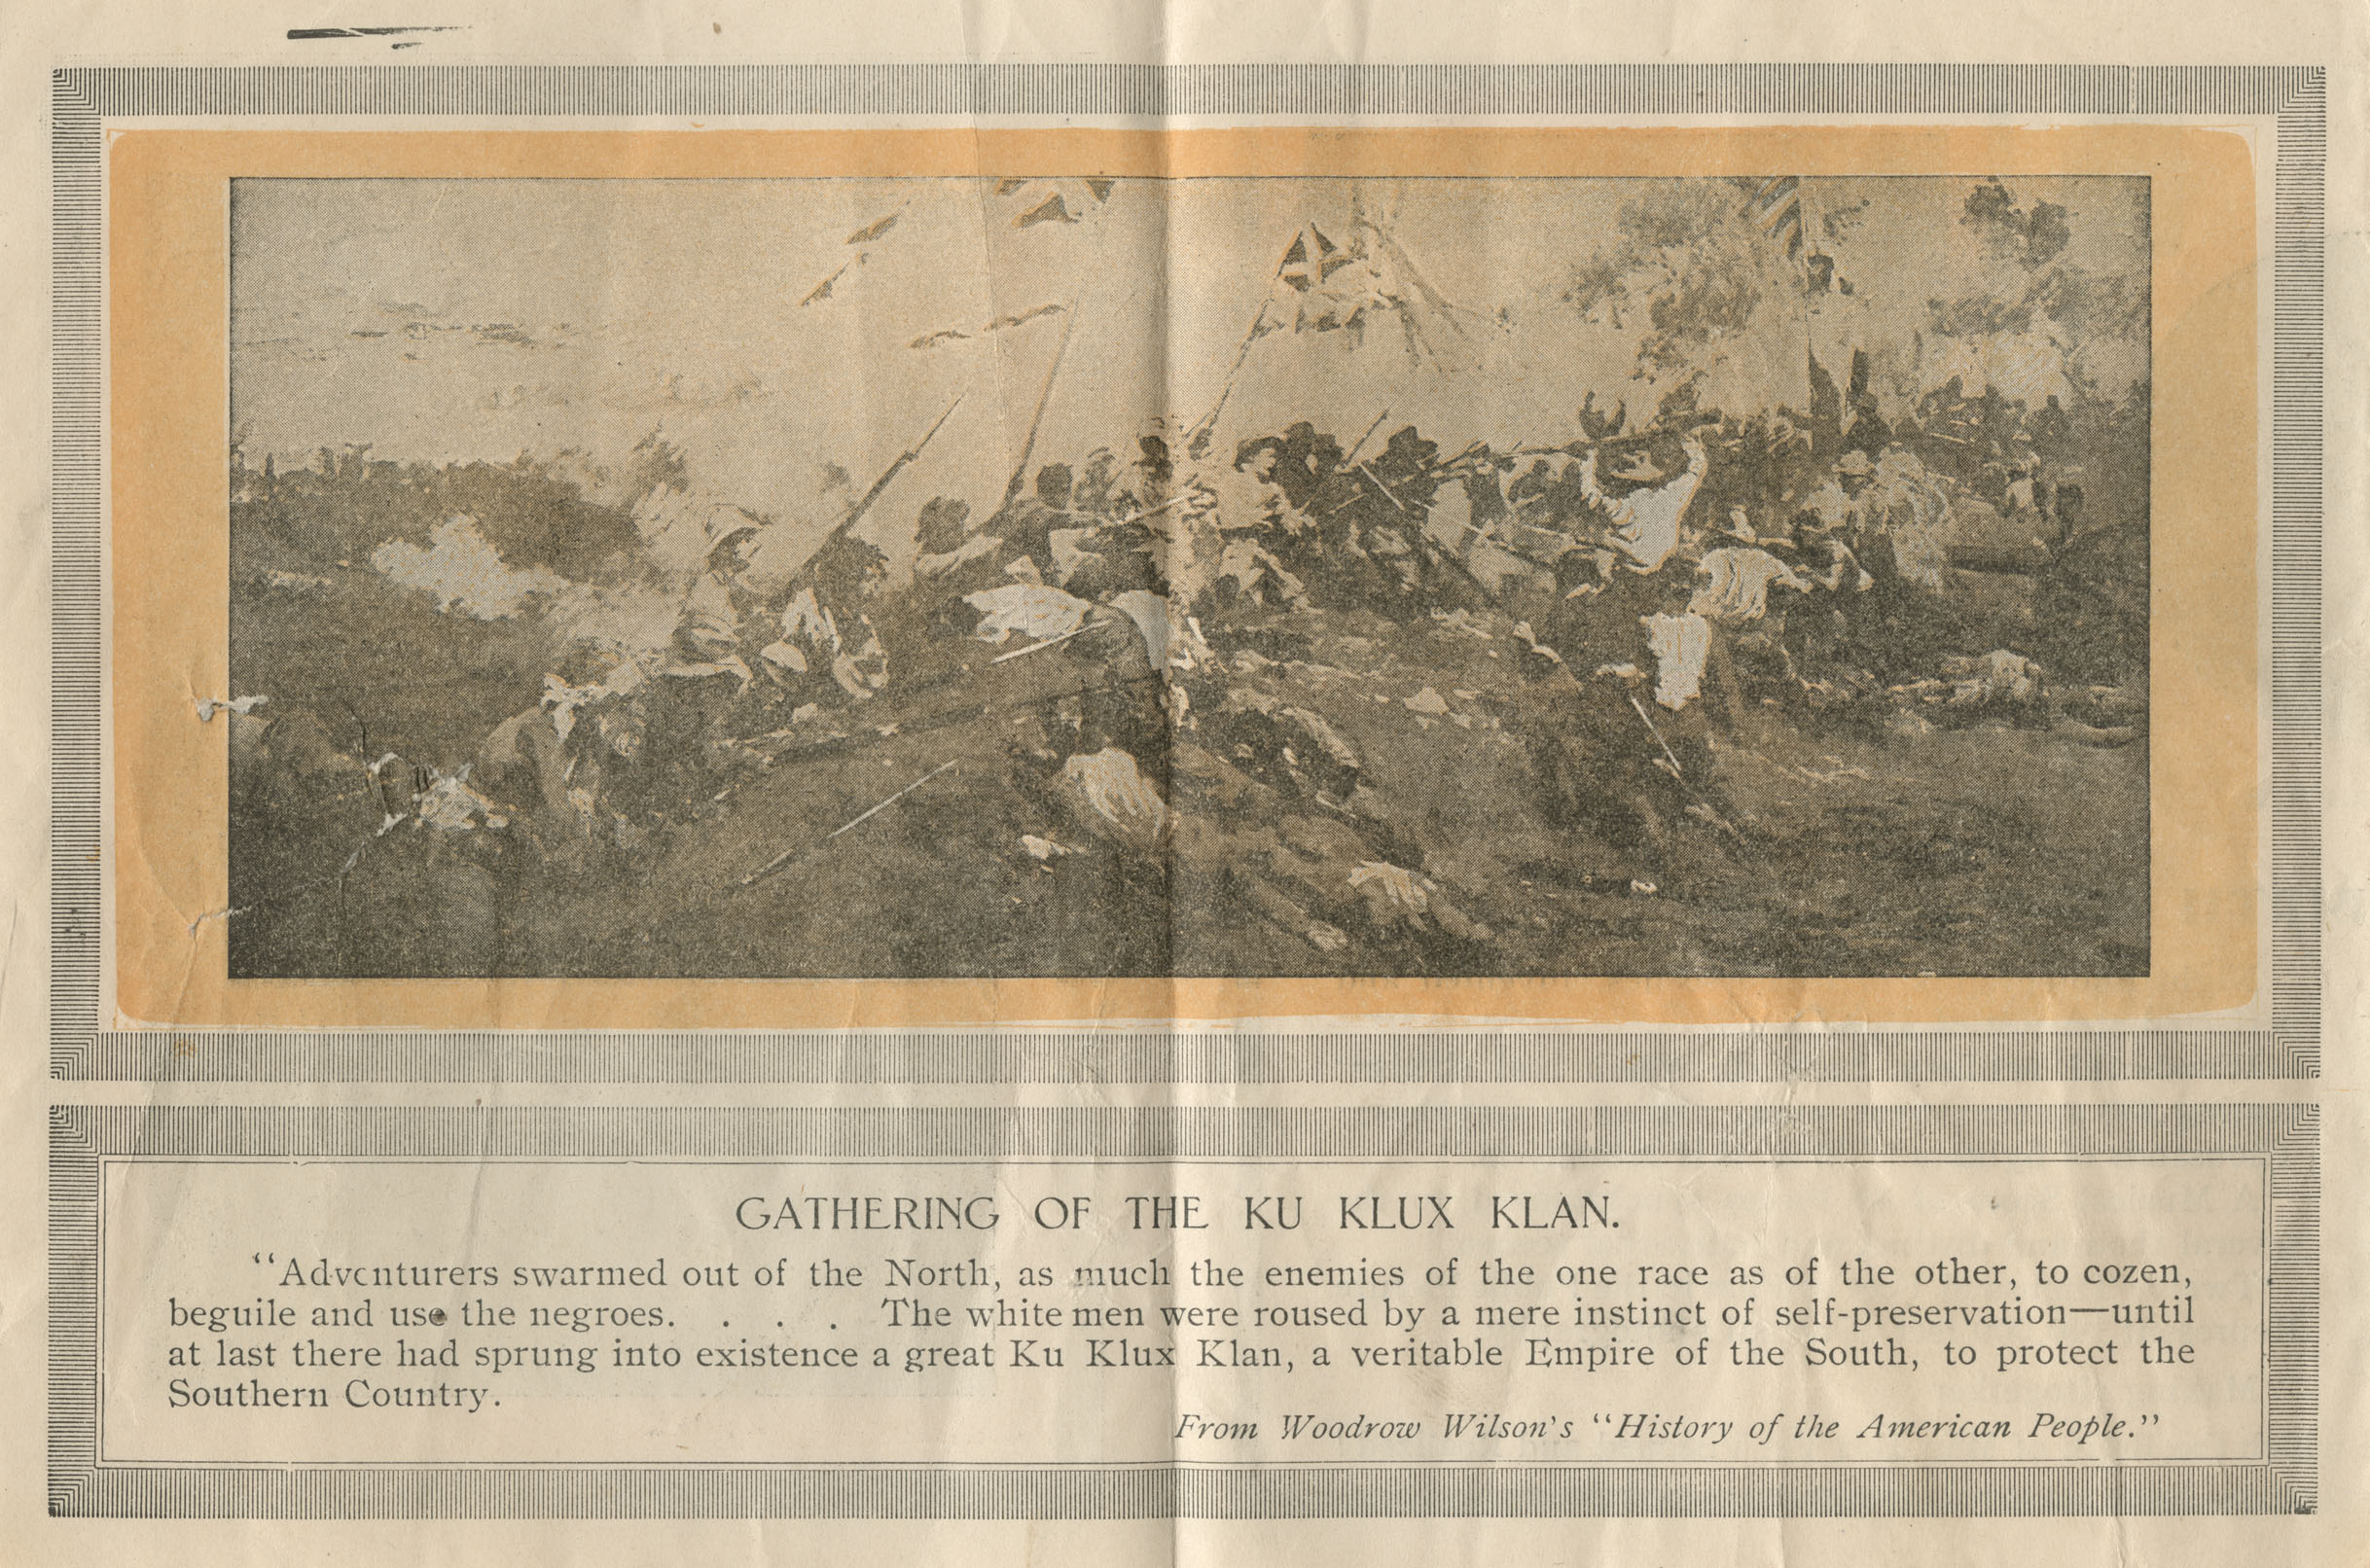 CAPTION: A page from the flyer illustrates how The Birth of a Nation mixed historic events with a subjective, fanciful view of the Klans origins.